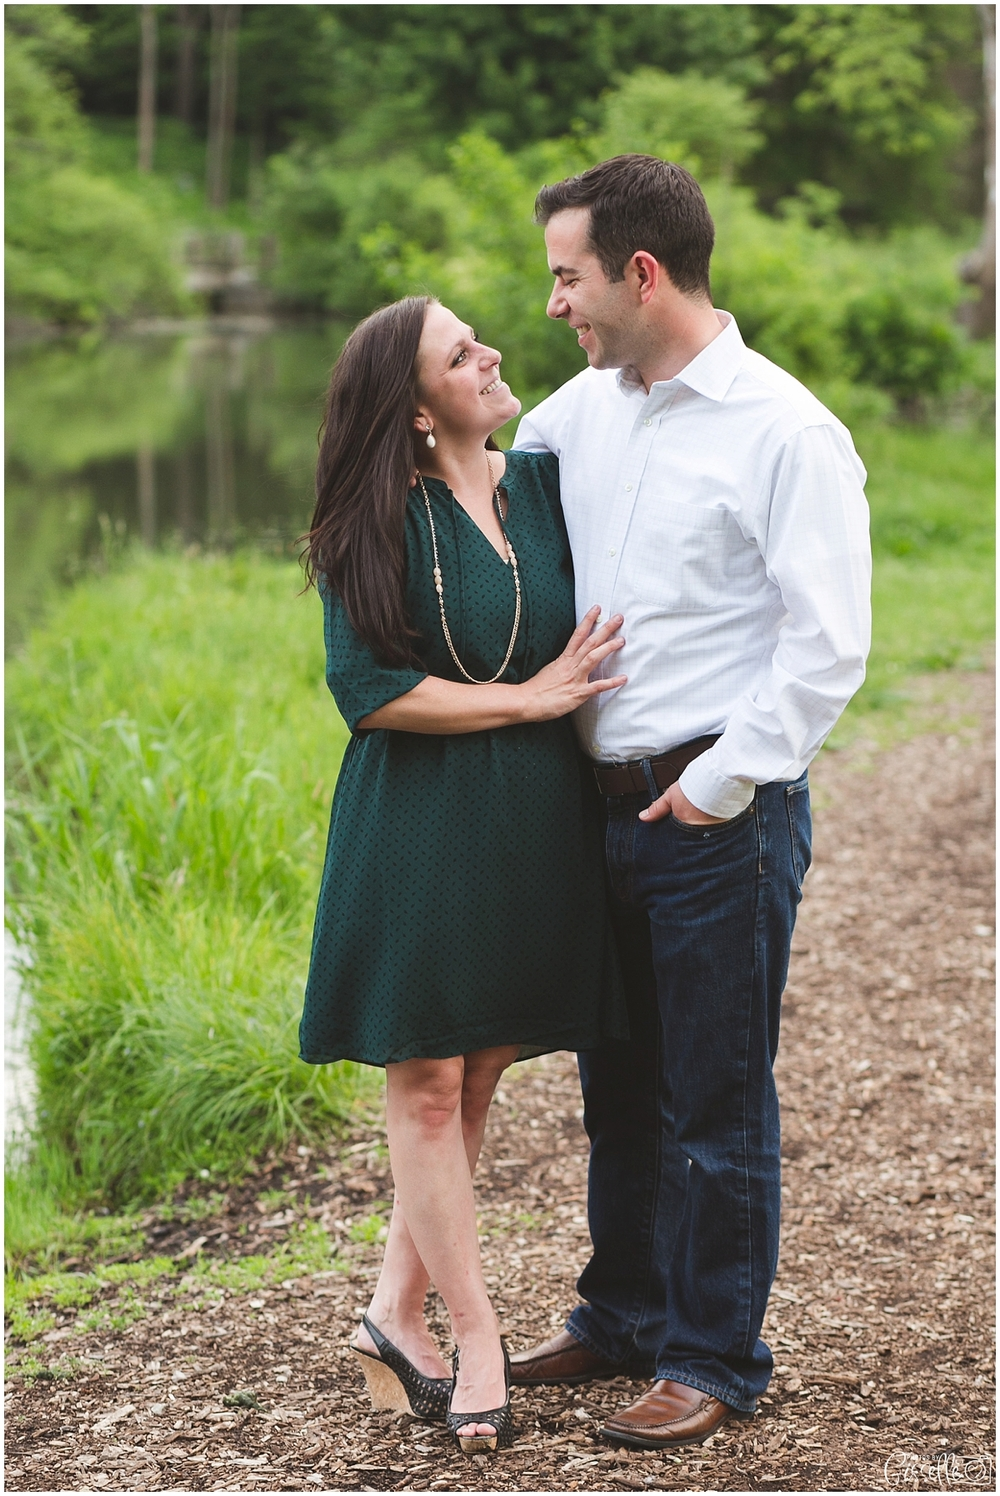 Morton-Arobretum-Engagement-Session-Photos-by-Gisselle013.jpg